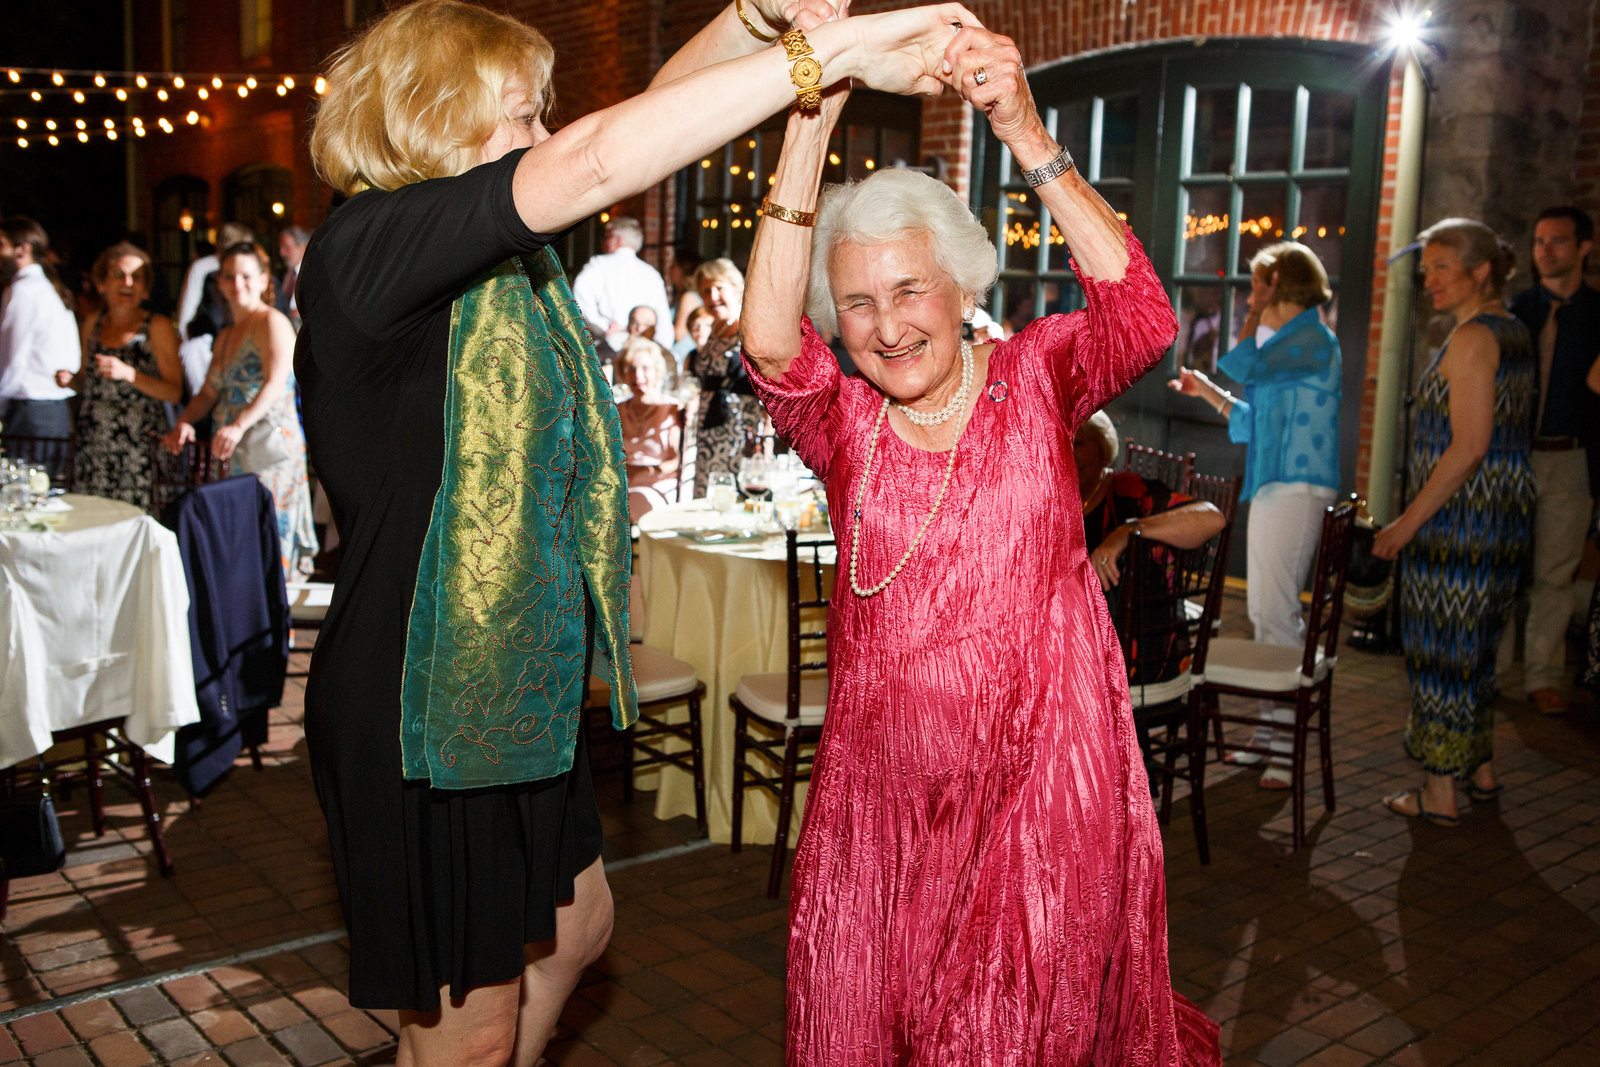 Cheekwood-Wedding-Reception-Grandma-Dancing